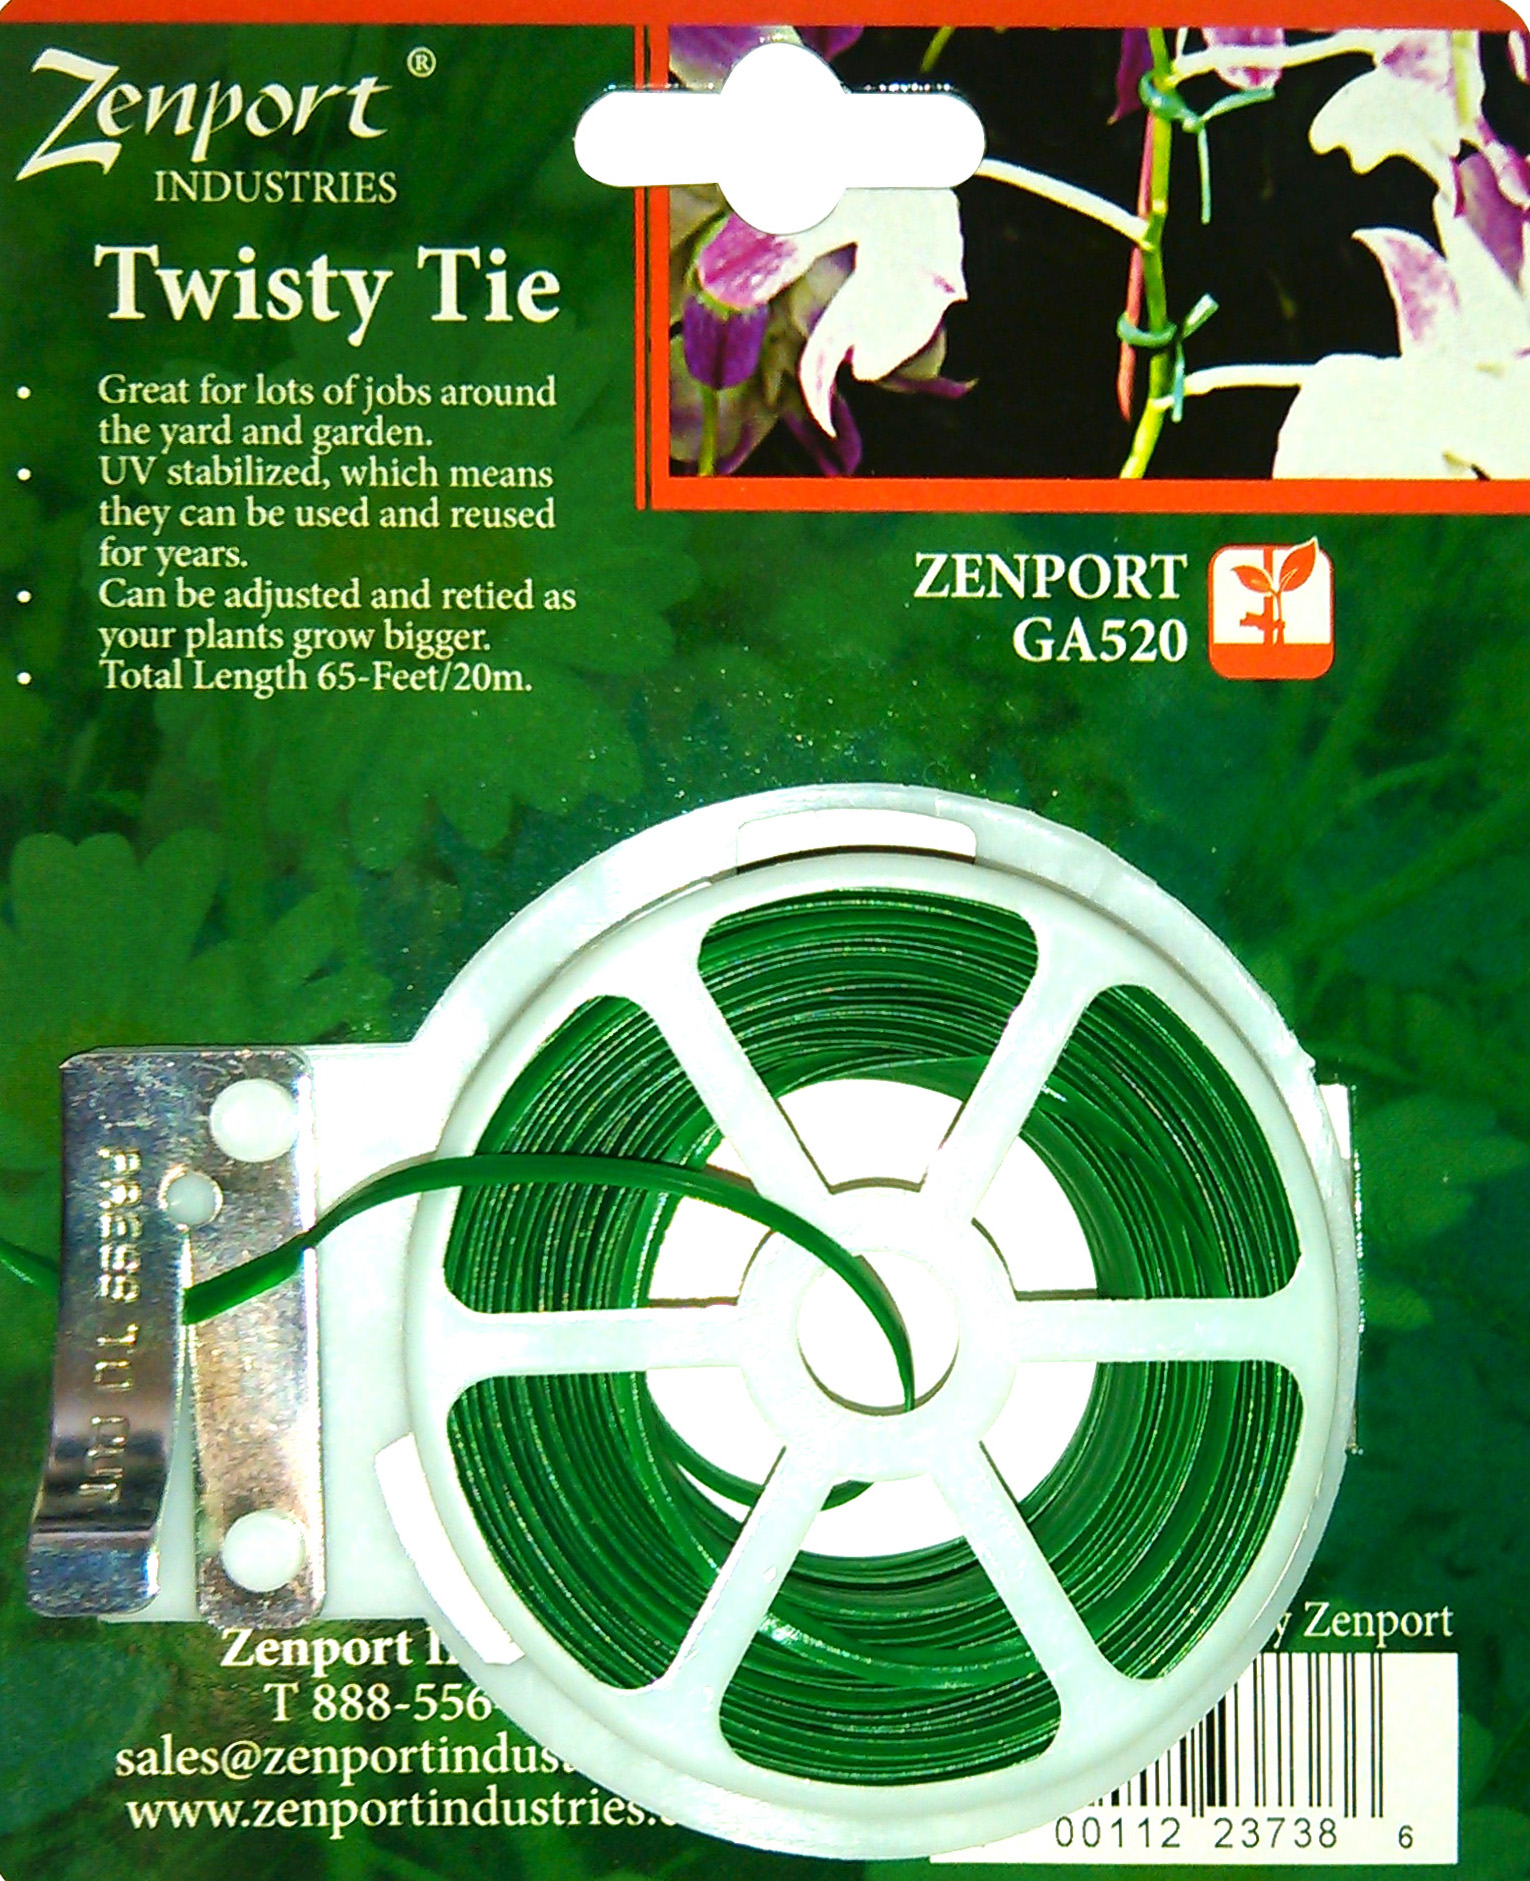 Plant Twisty Tie GA520 Garden Twisty Plant Tie, 65-Feet Long